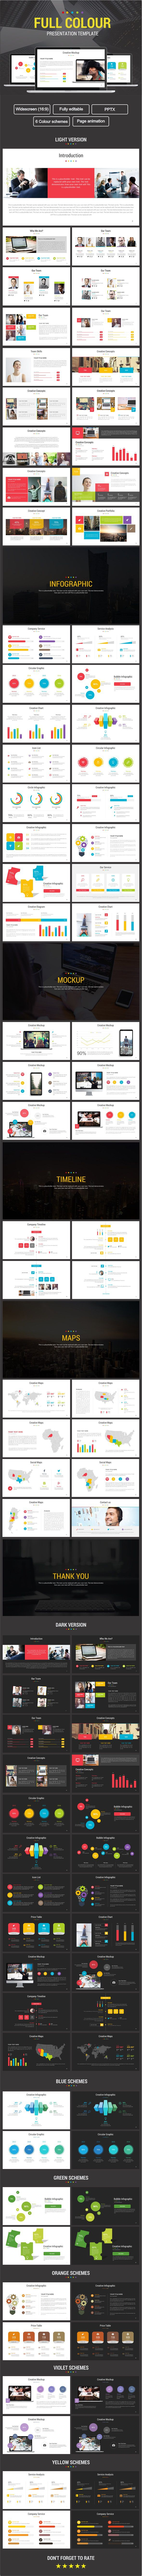 Full Colour PowerPoint Template #powerpoint #presentation Download : https://graphicriver.net/item/full-colour-powerpoint-template/18439688?s_rank=1?ref=BrandEarth